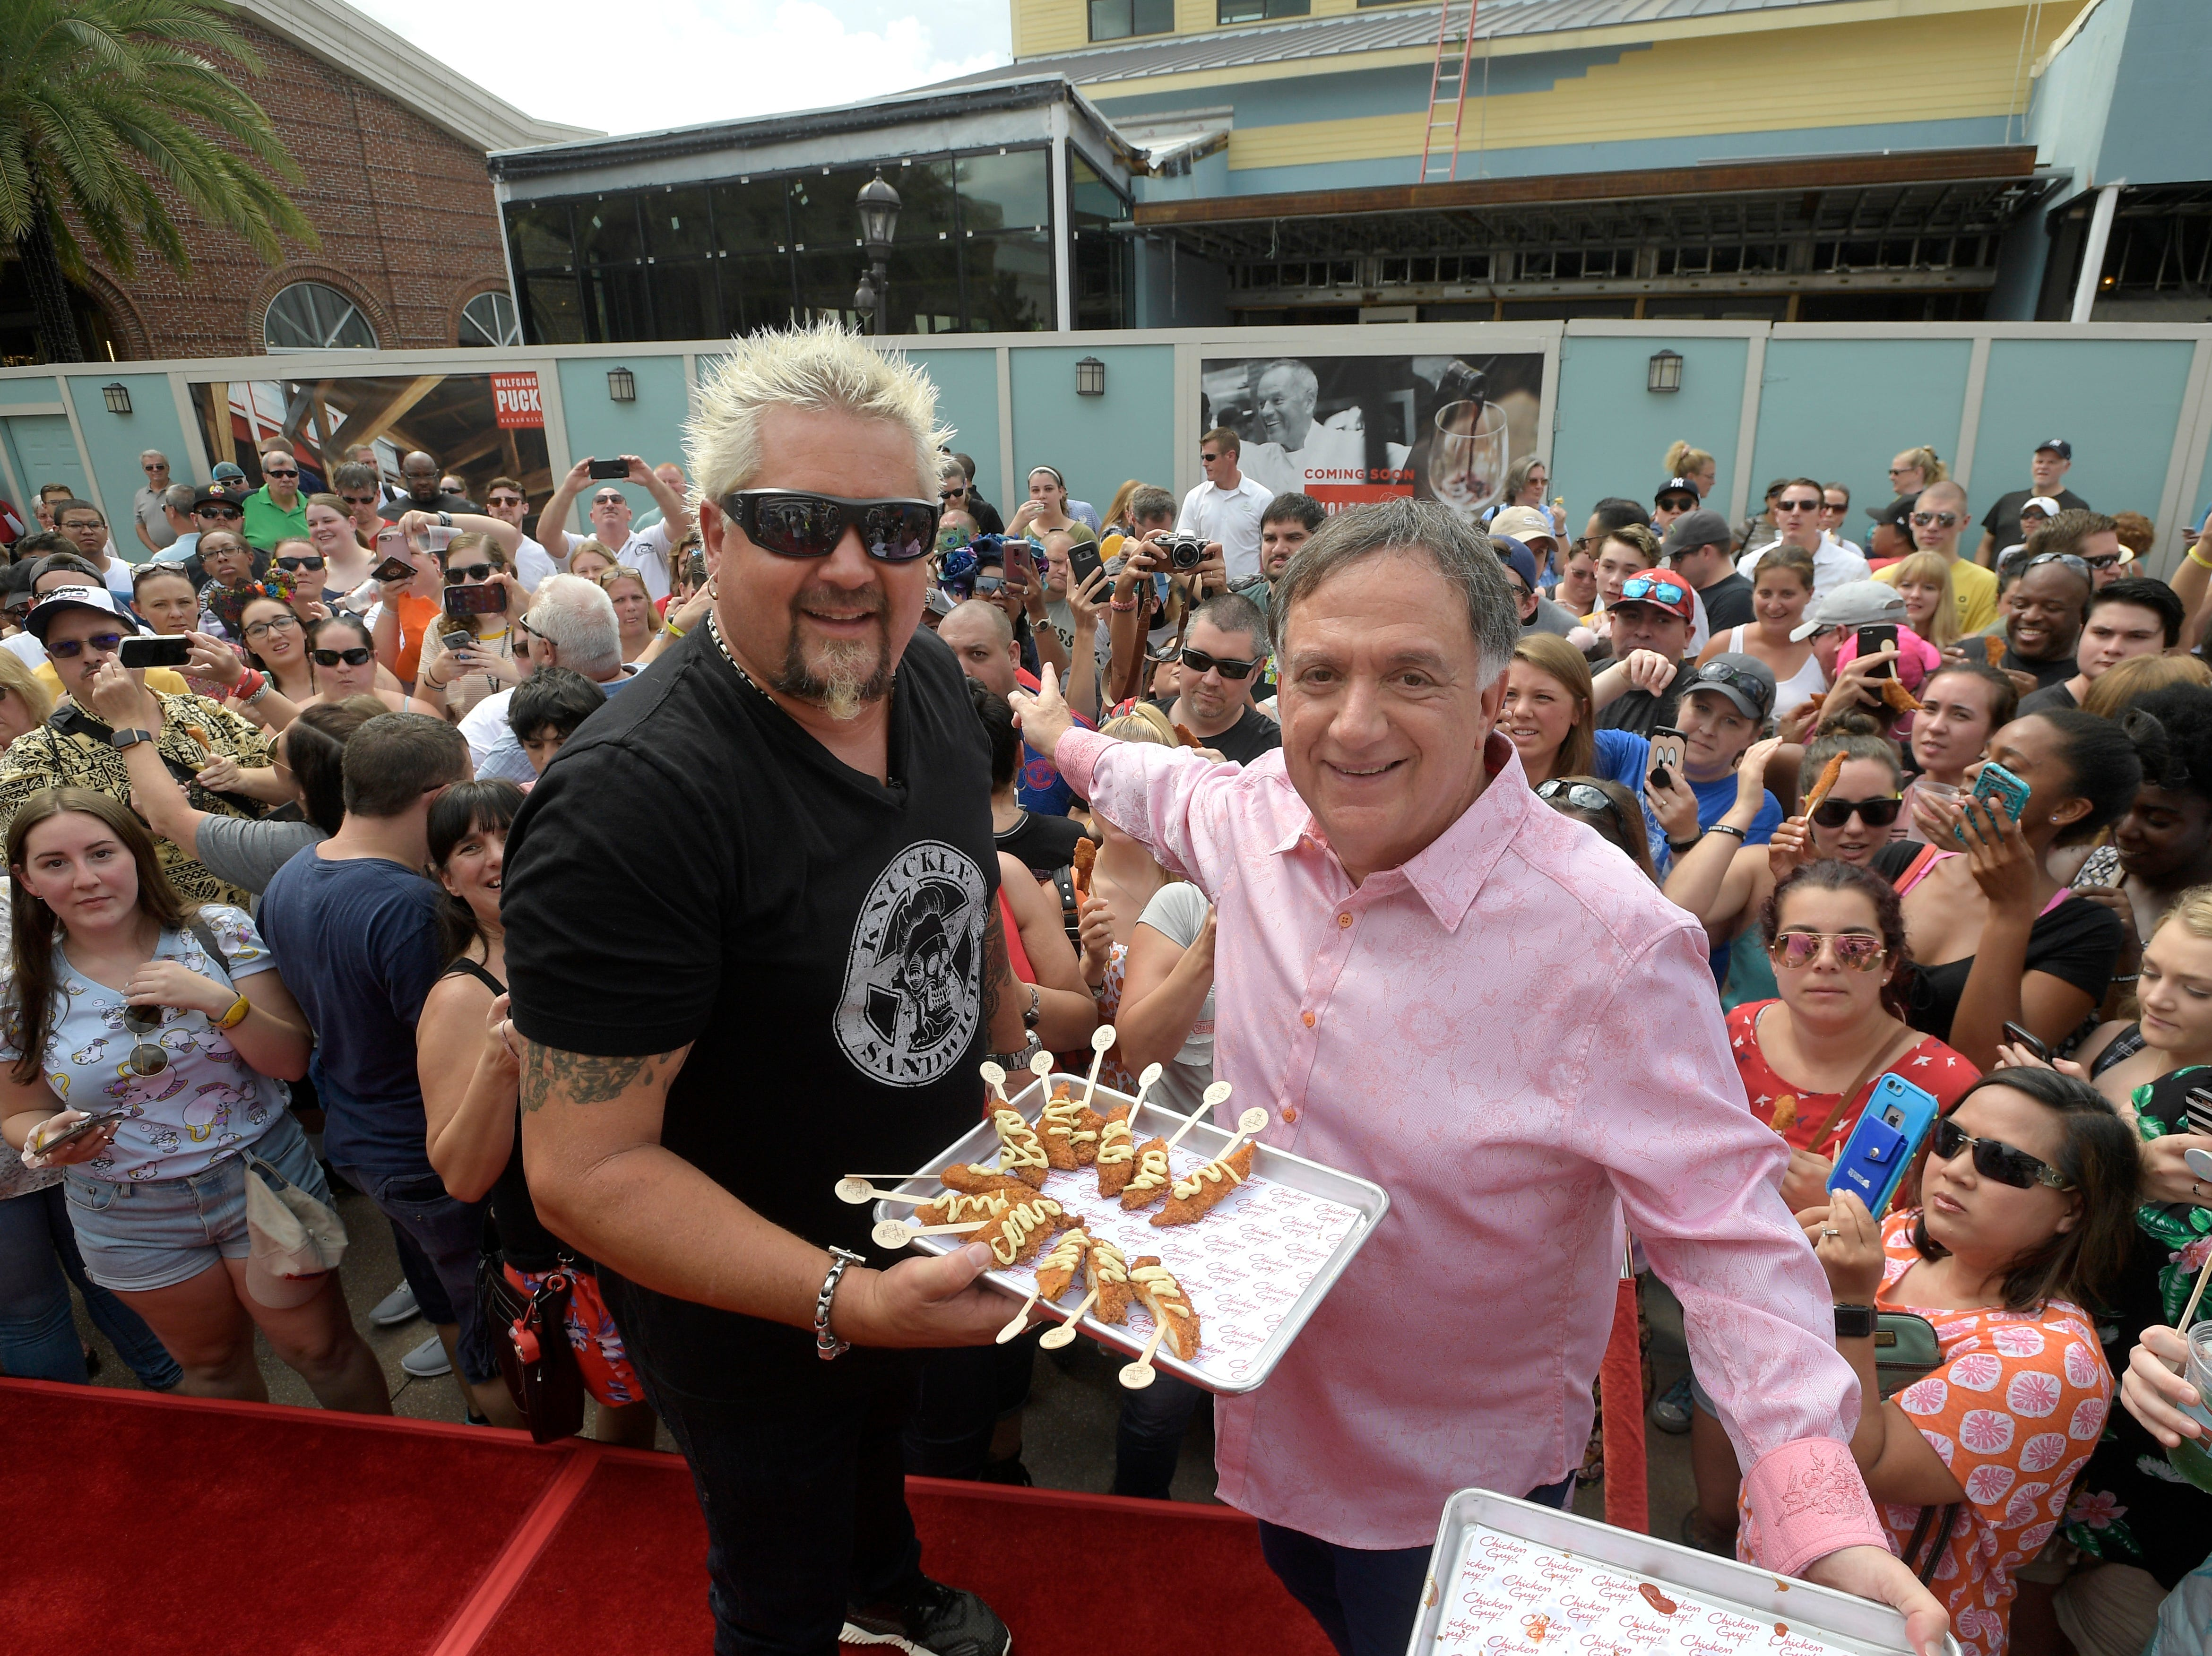 Chef Guy Fieri, left, and restaurateur, Robert Earl hand out samples to guests at Chicken Guy! at Disney Springs Monday after a special ribbon-cutting ceremony.